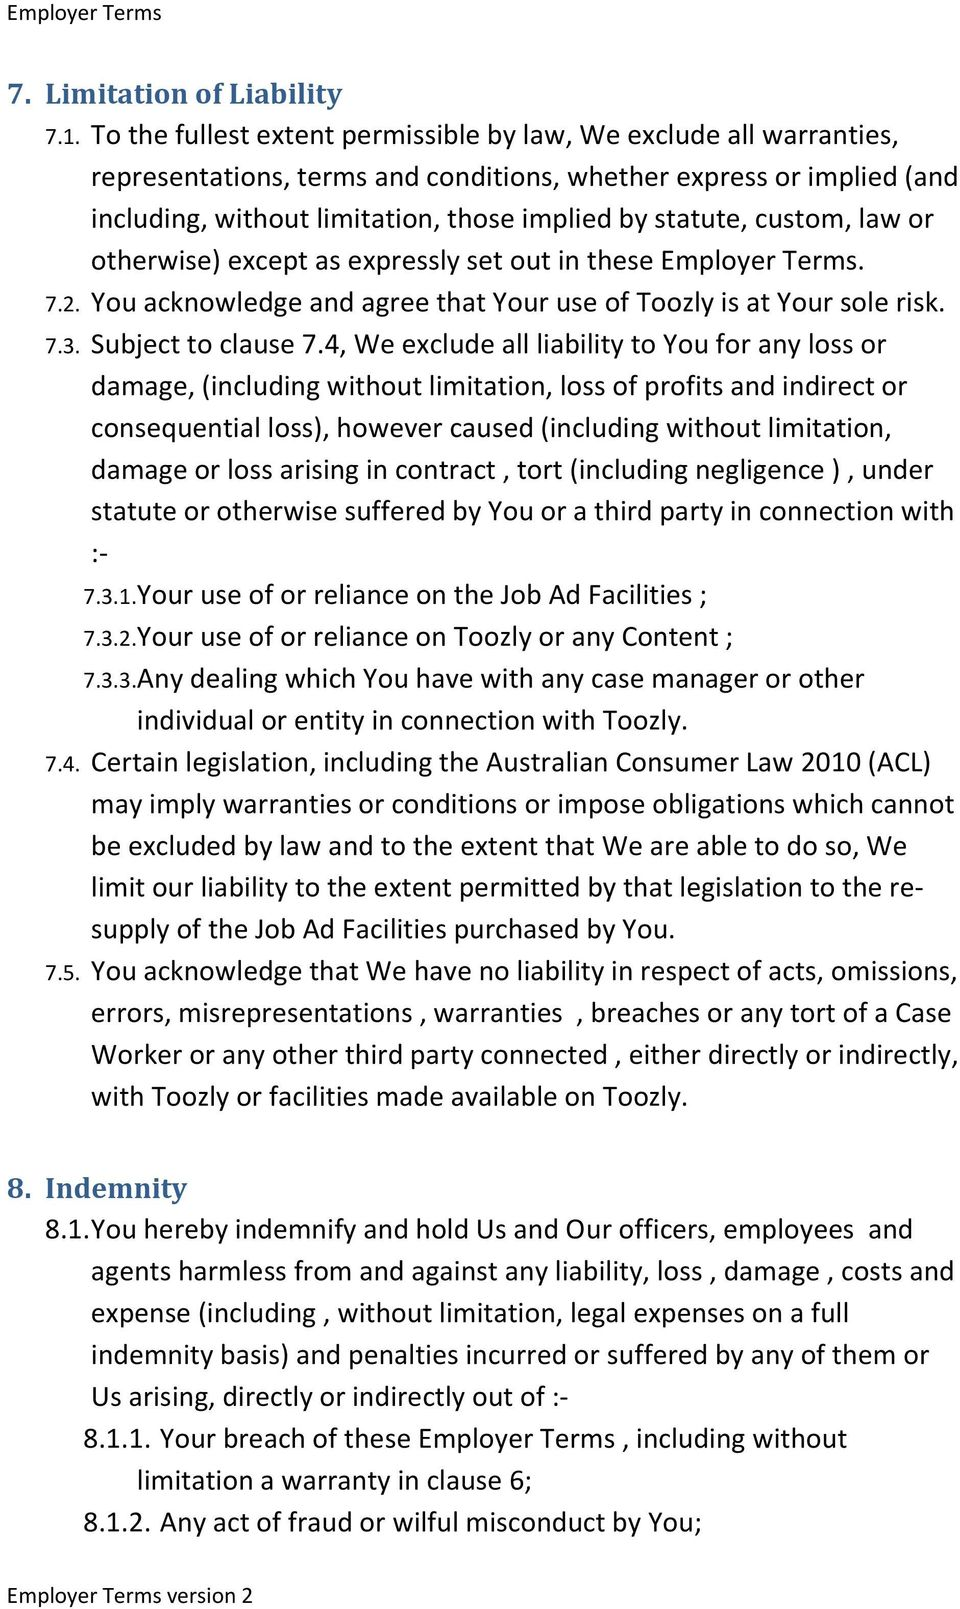 custom, law or otherwise) except as expressly set out in these Employer Terms. 7.2. You acknowledge and agree that Your use of Toozly is at Your sole risk. 7.3. Subject to clause 7.